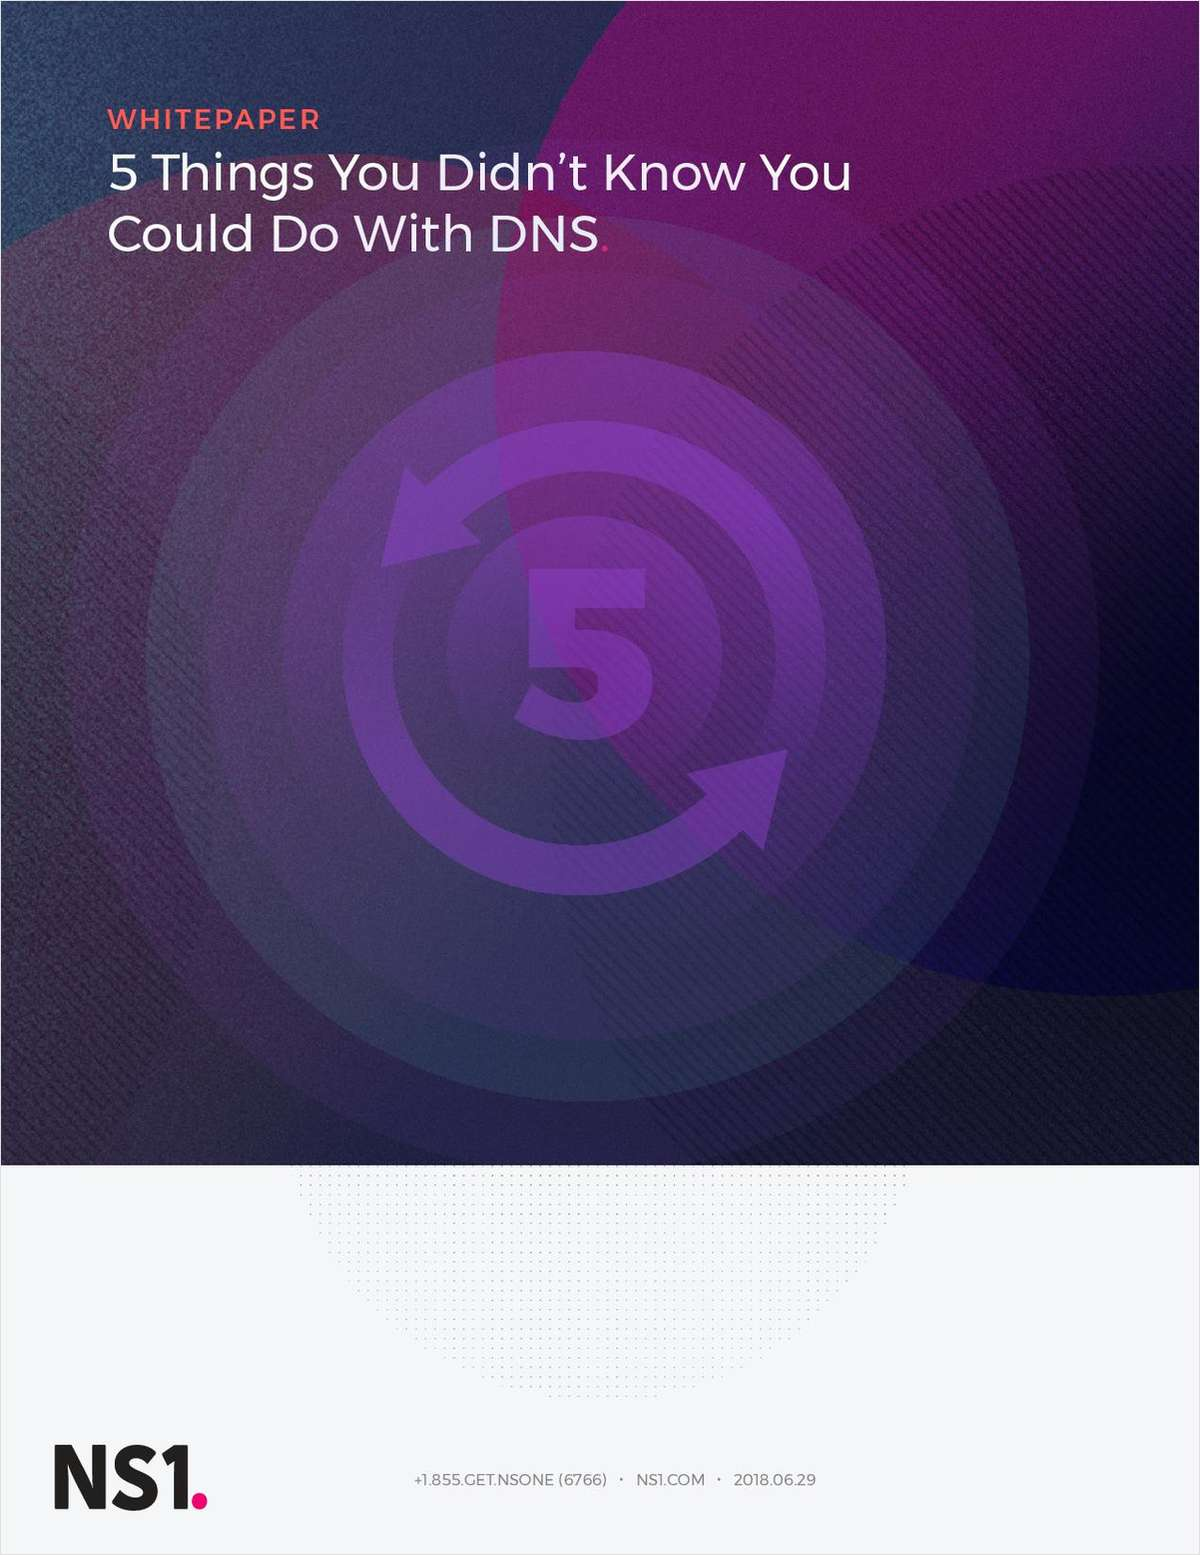 5 Things You Didn't Know You Could Do With DNS